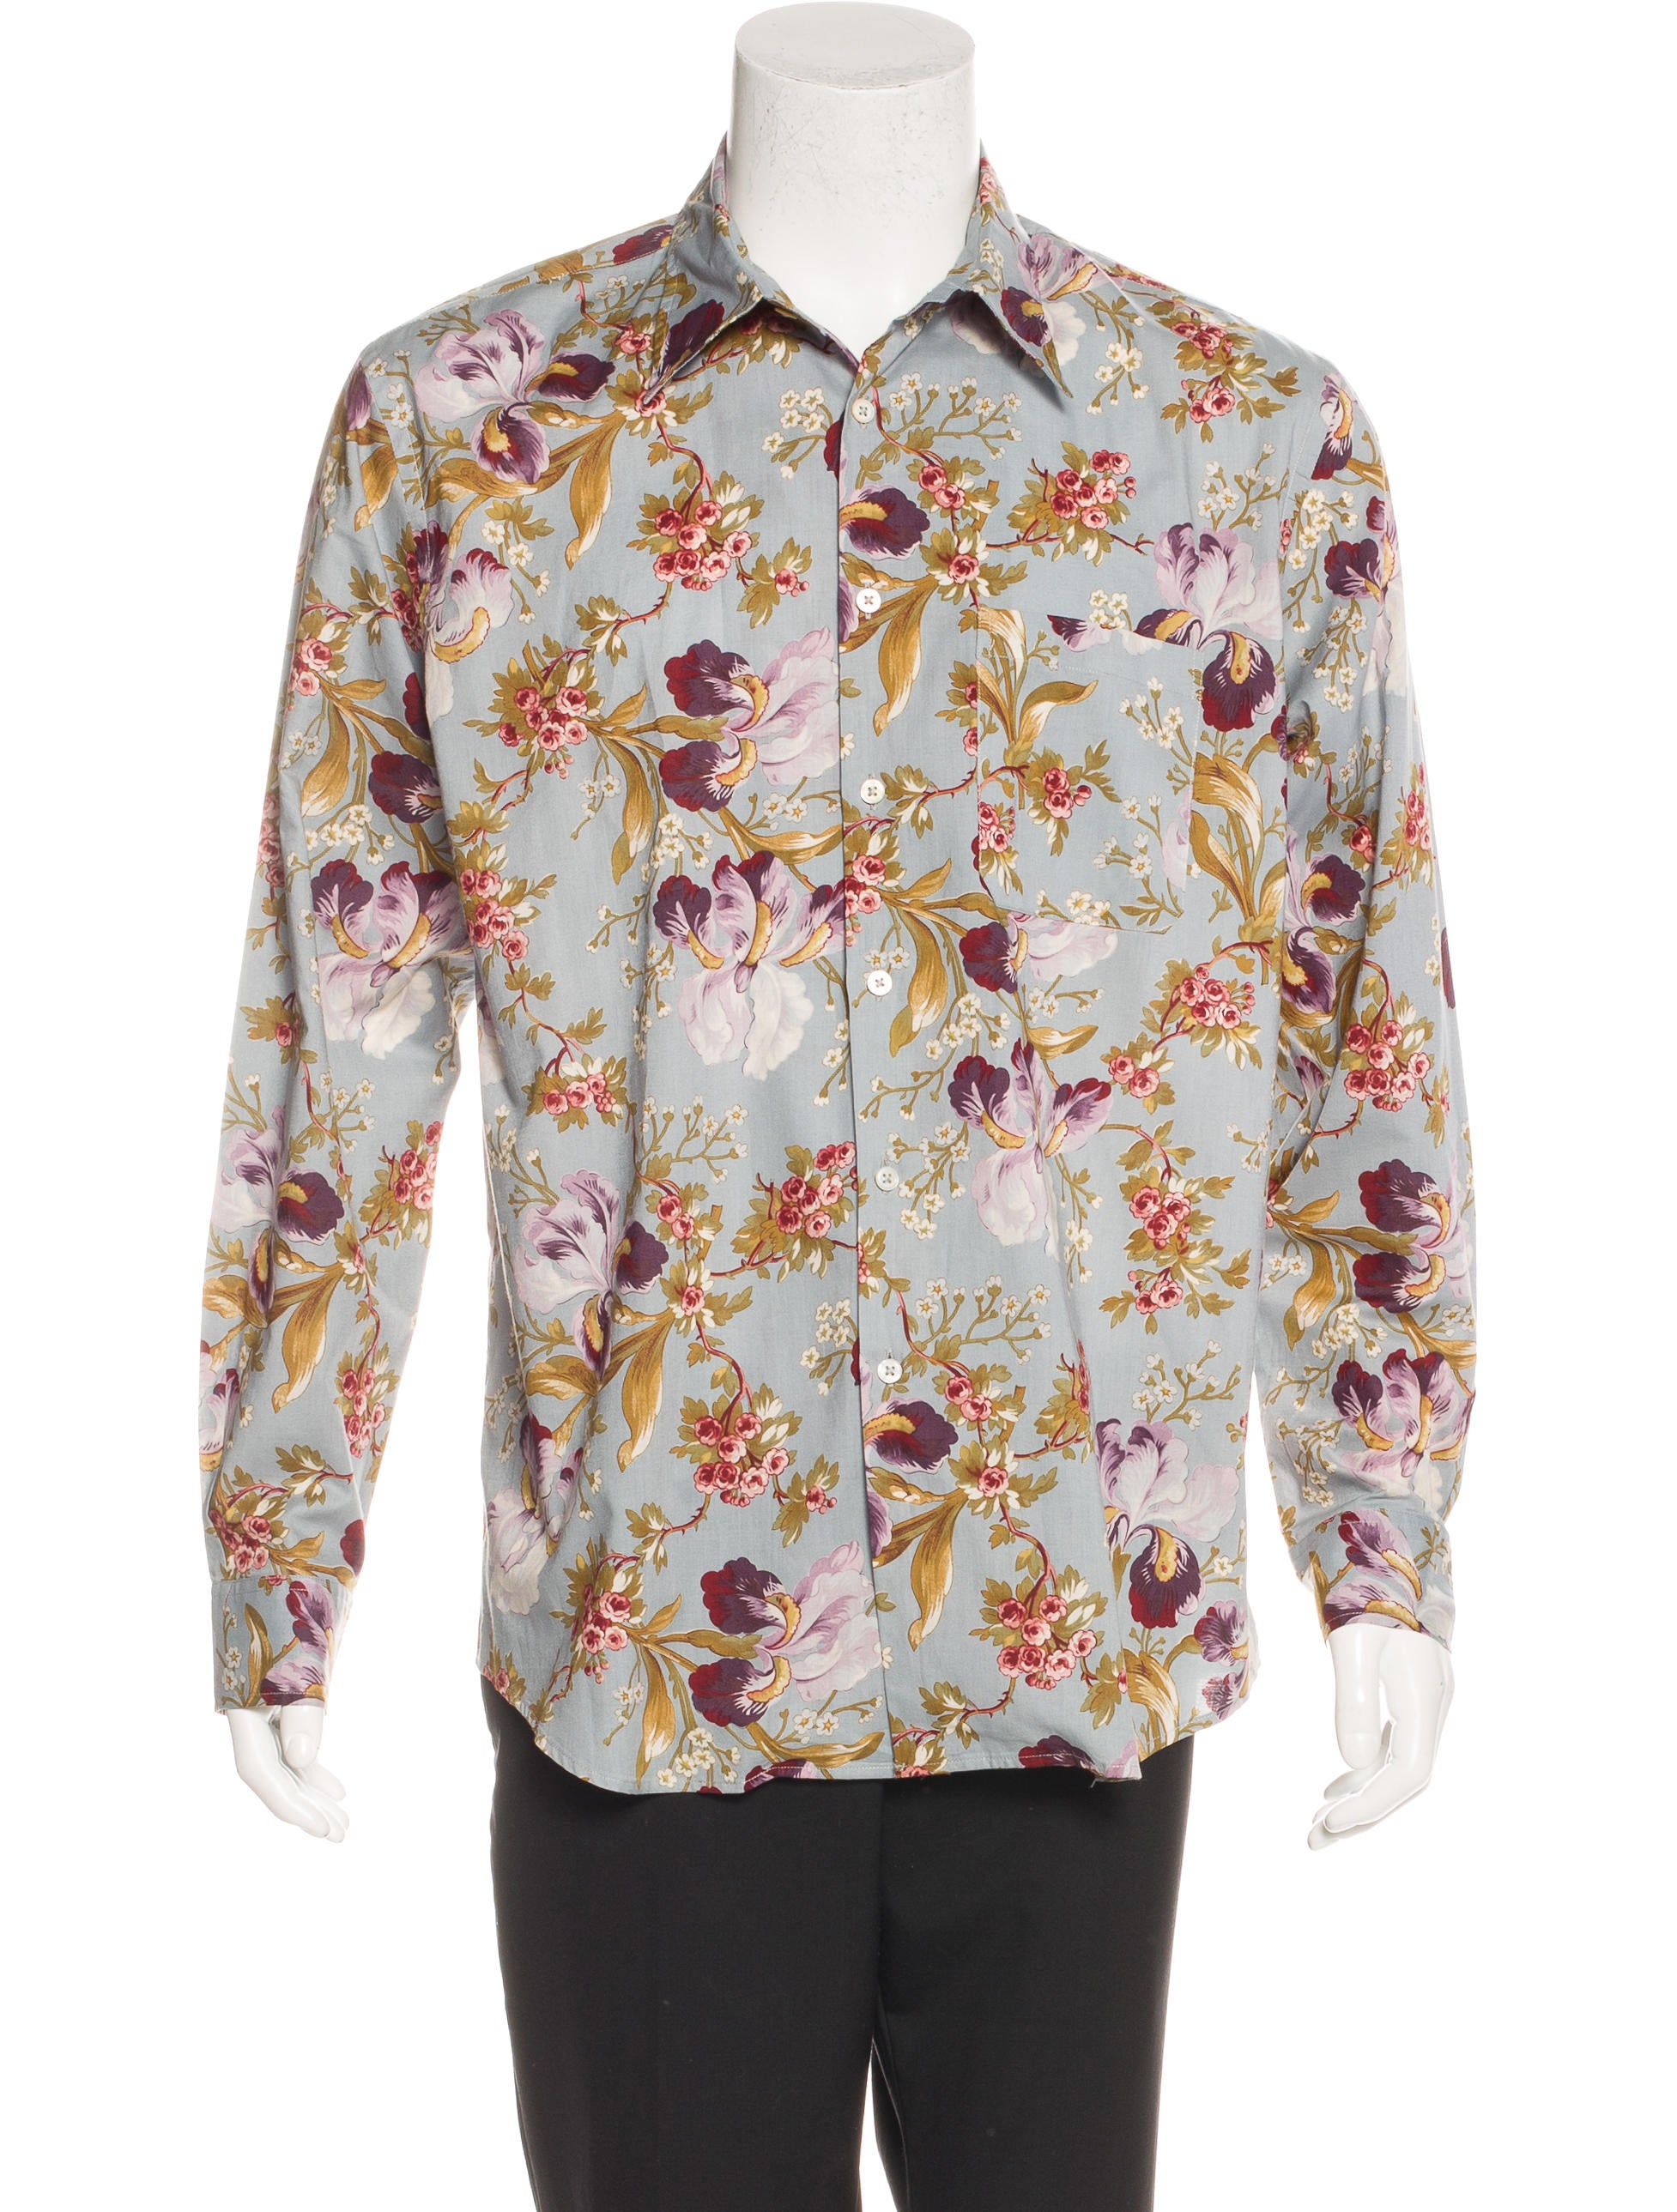 paul smith floral print shirt clothing wps23654 the